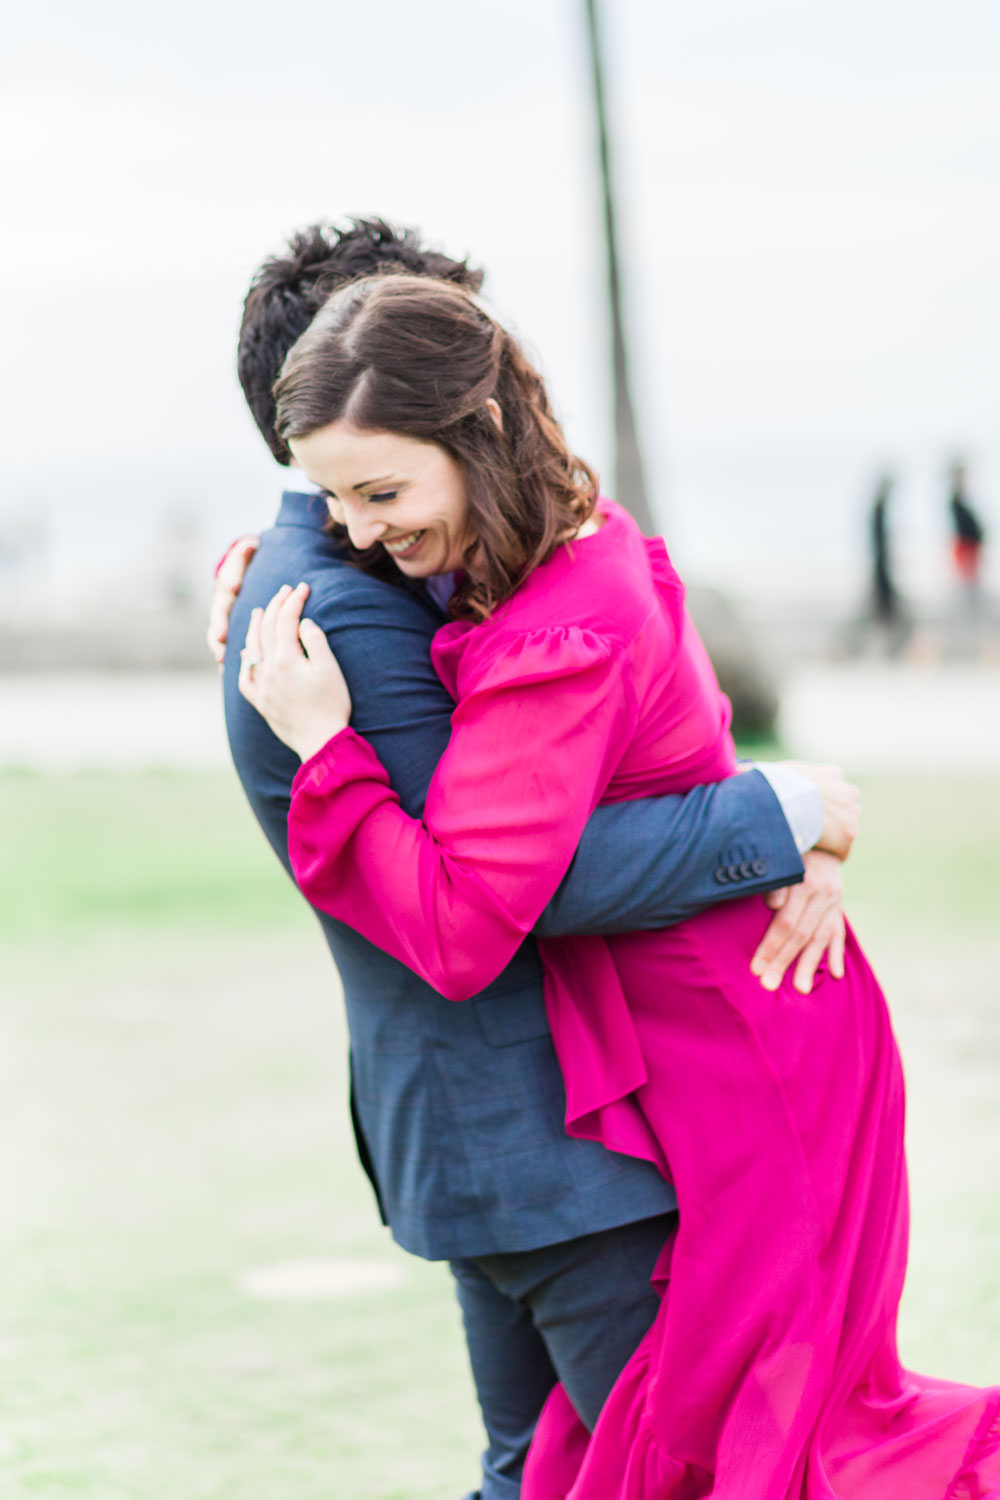 La Jolla Shores Engagement Photos with a magenta dress and blue suit, Cavin Elizabeth Photography